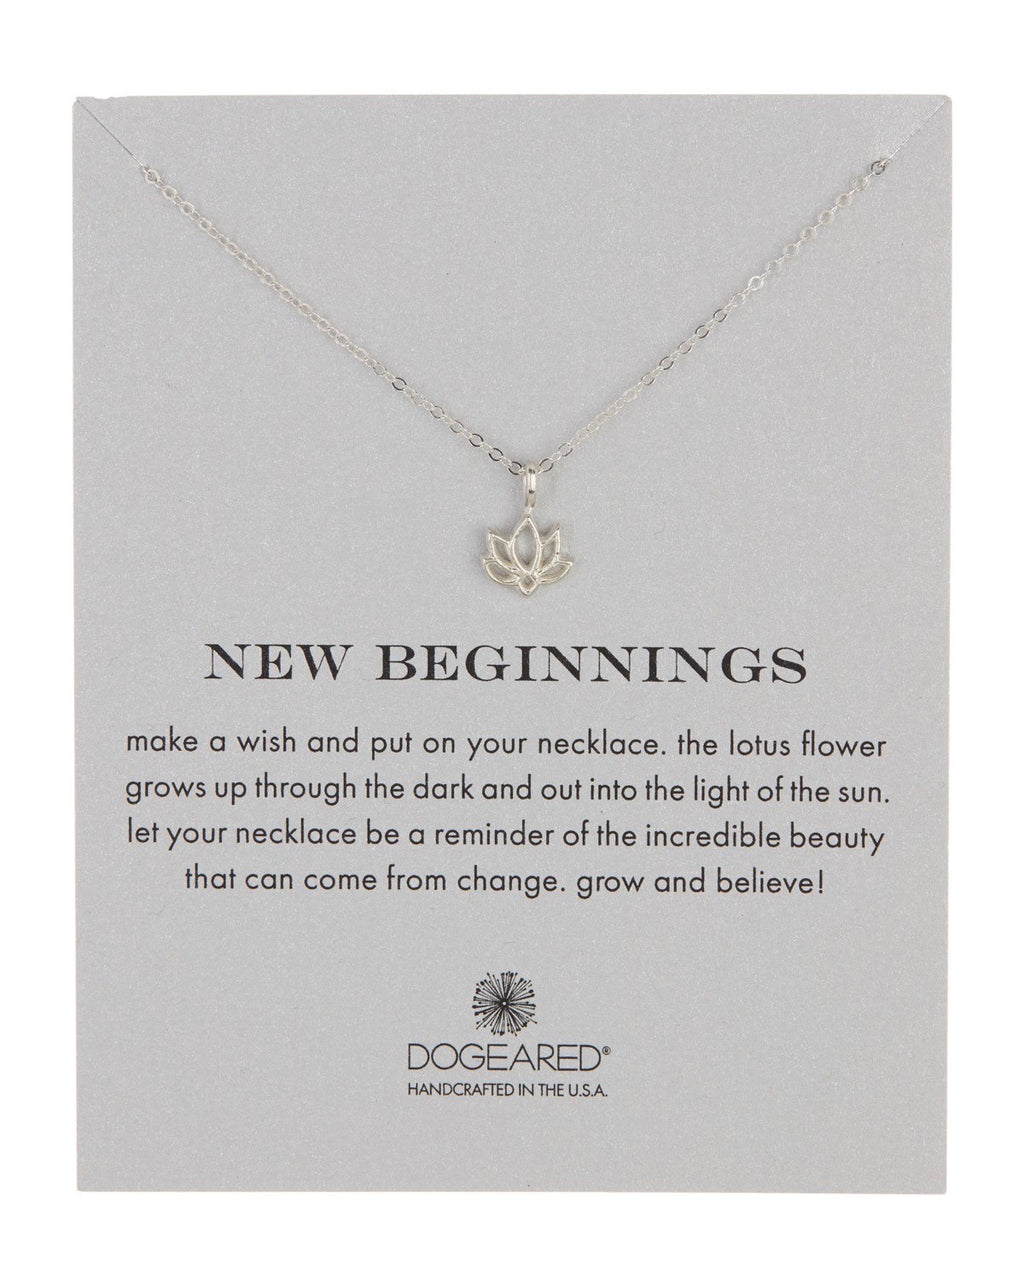 Dogeared - Reminder New Beginnings Necklace in Sterling Silver